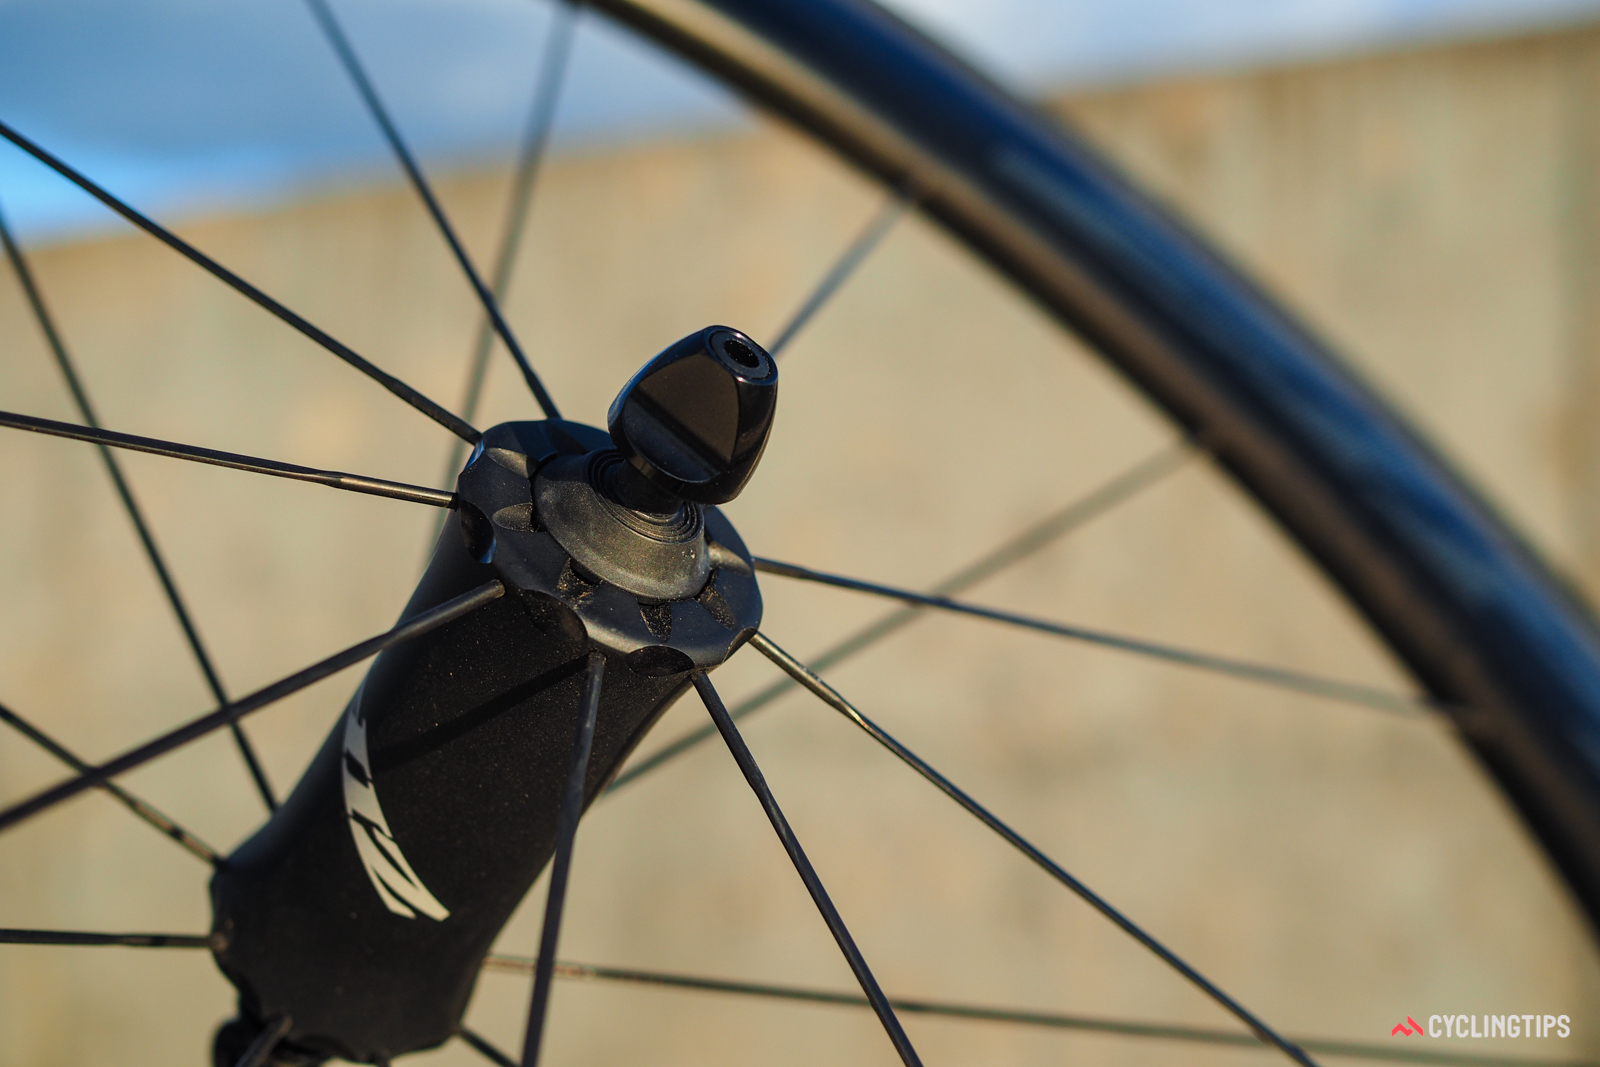 The scalloped ends on the Cognition front hub are said to help offset the outward stresses created by spoke tension for more predictable and consistent bearing bores. Unlike some older Zipp hubs, these aren't adjustable for preload (nor is any adjustment needed, according to Zipp).